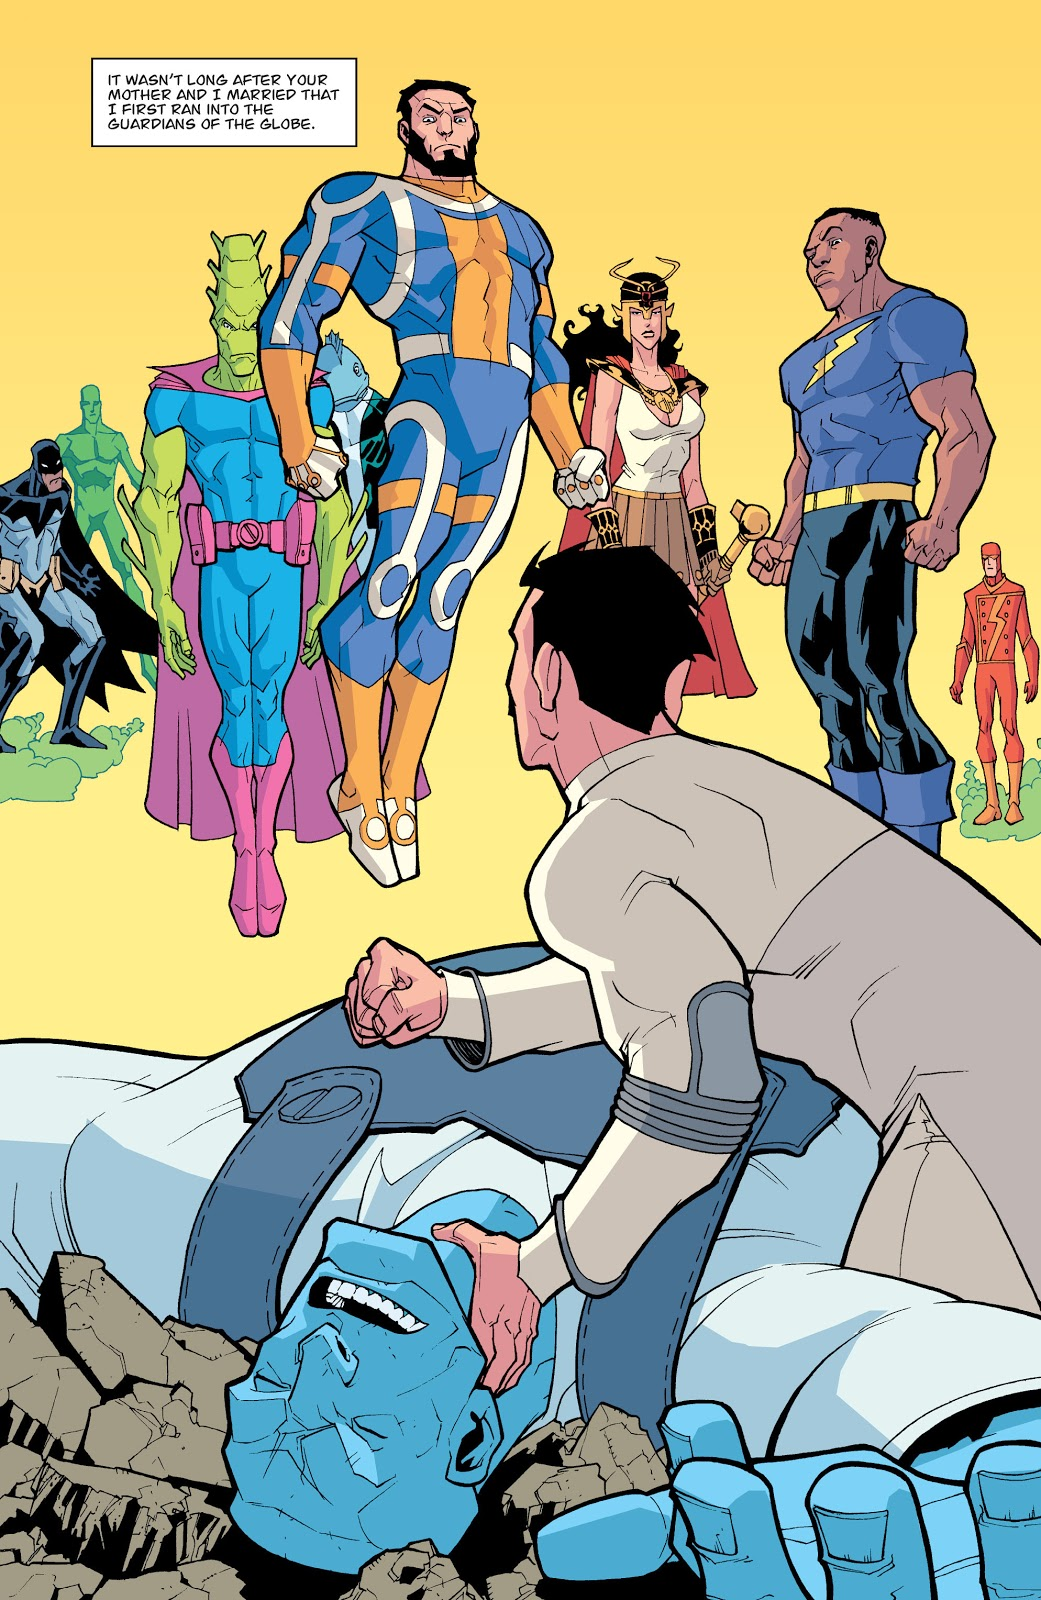 Guardians Of The Globe (Invincible #11)